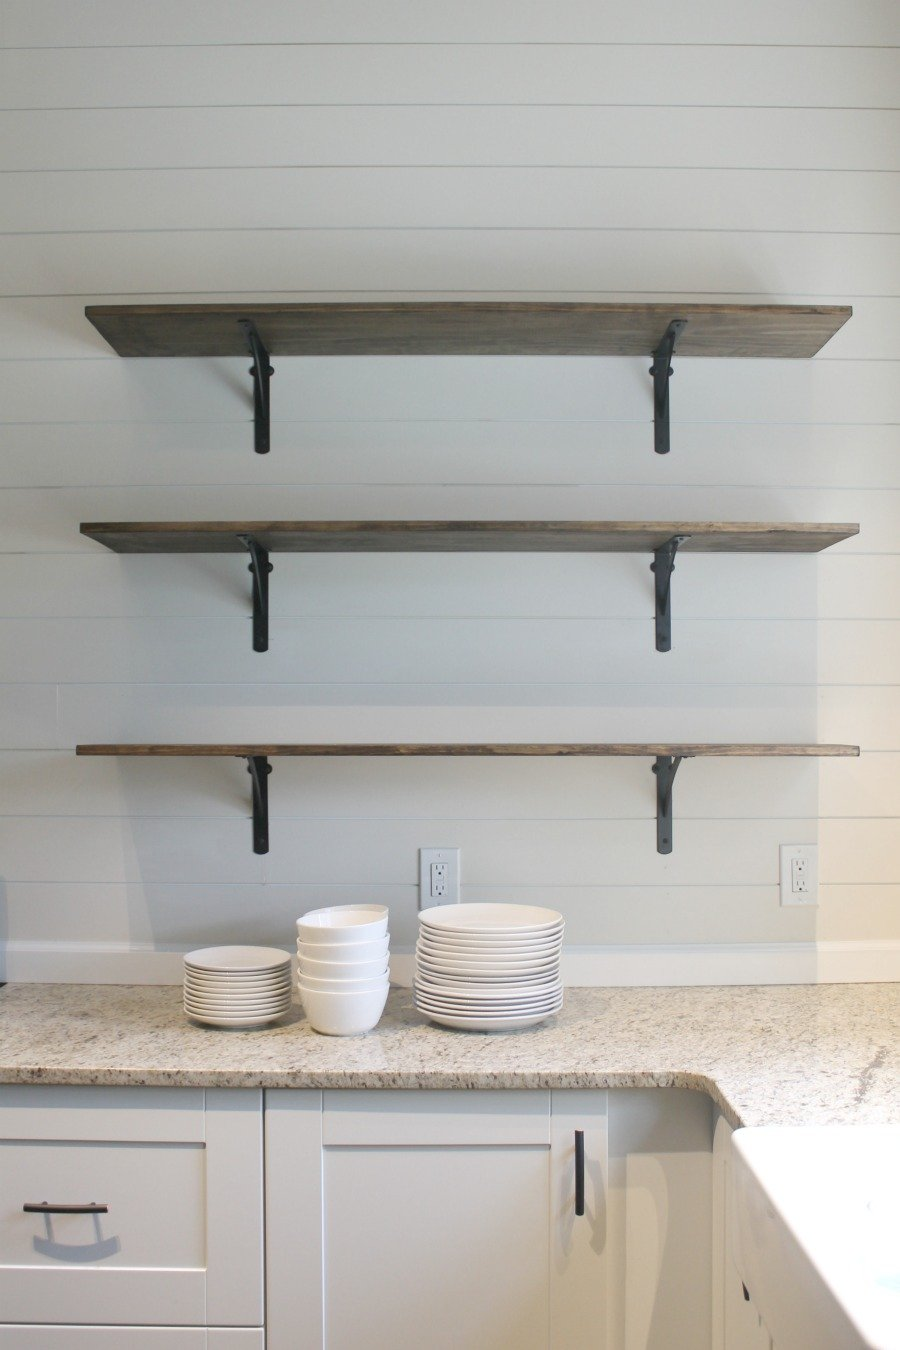 DIY kitchen shelves - open, floating